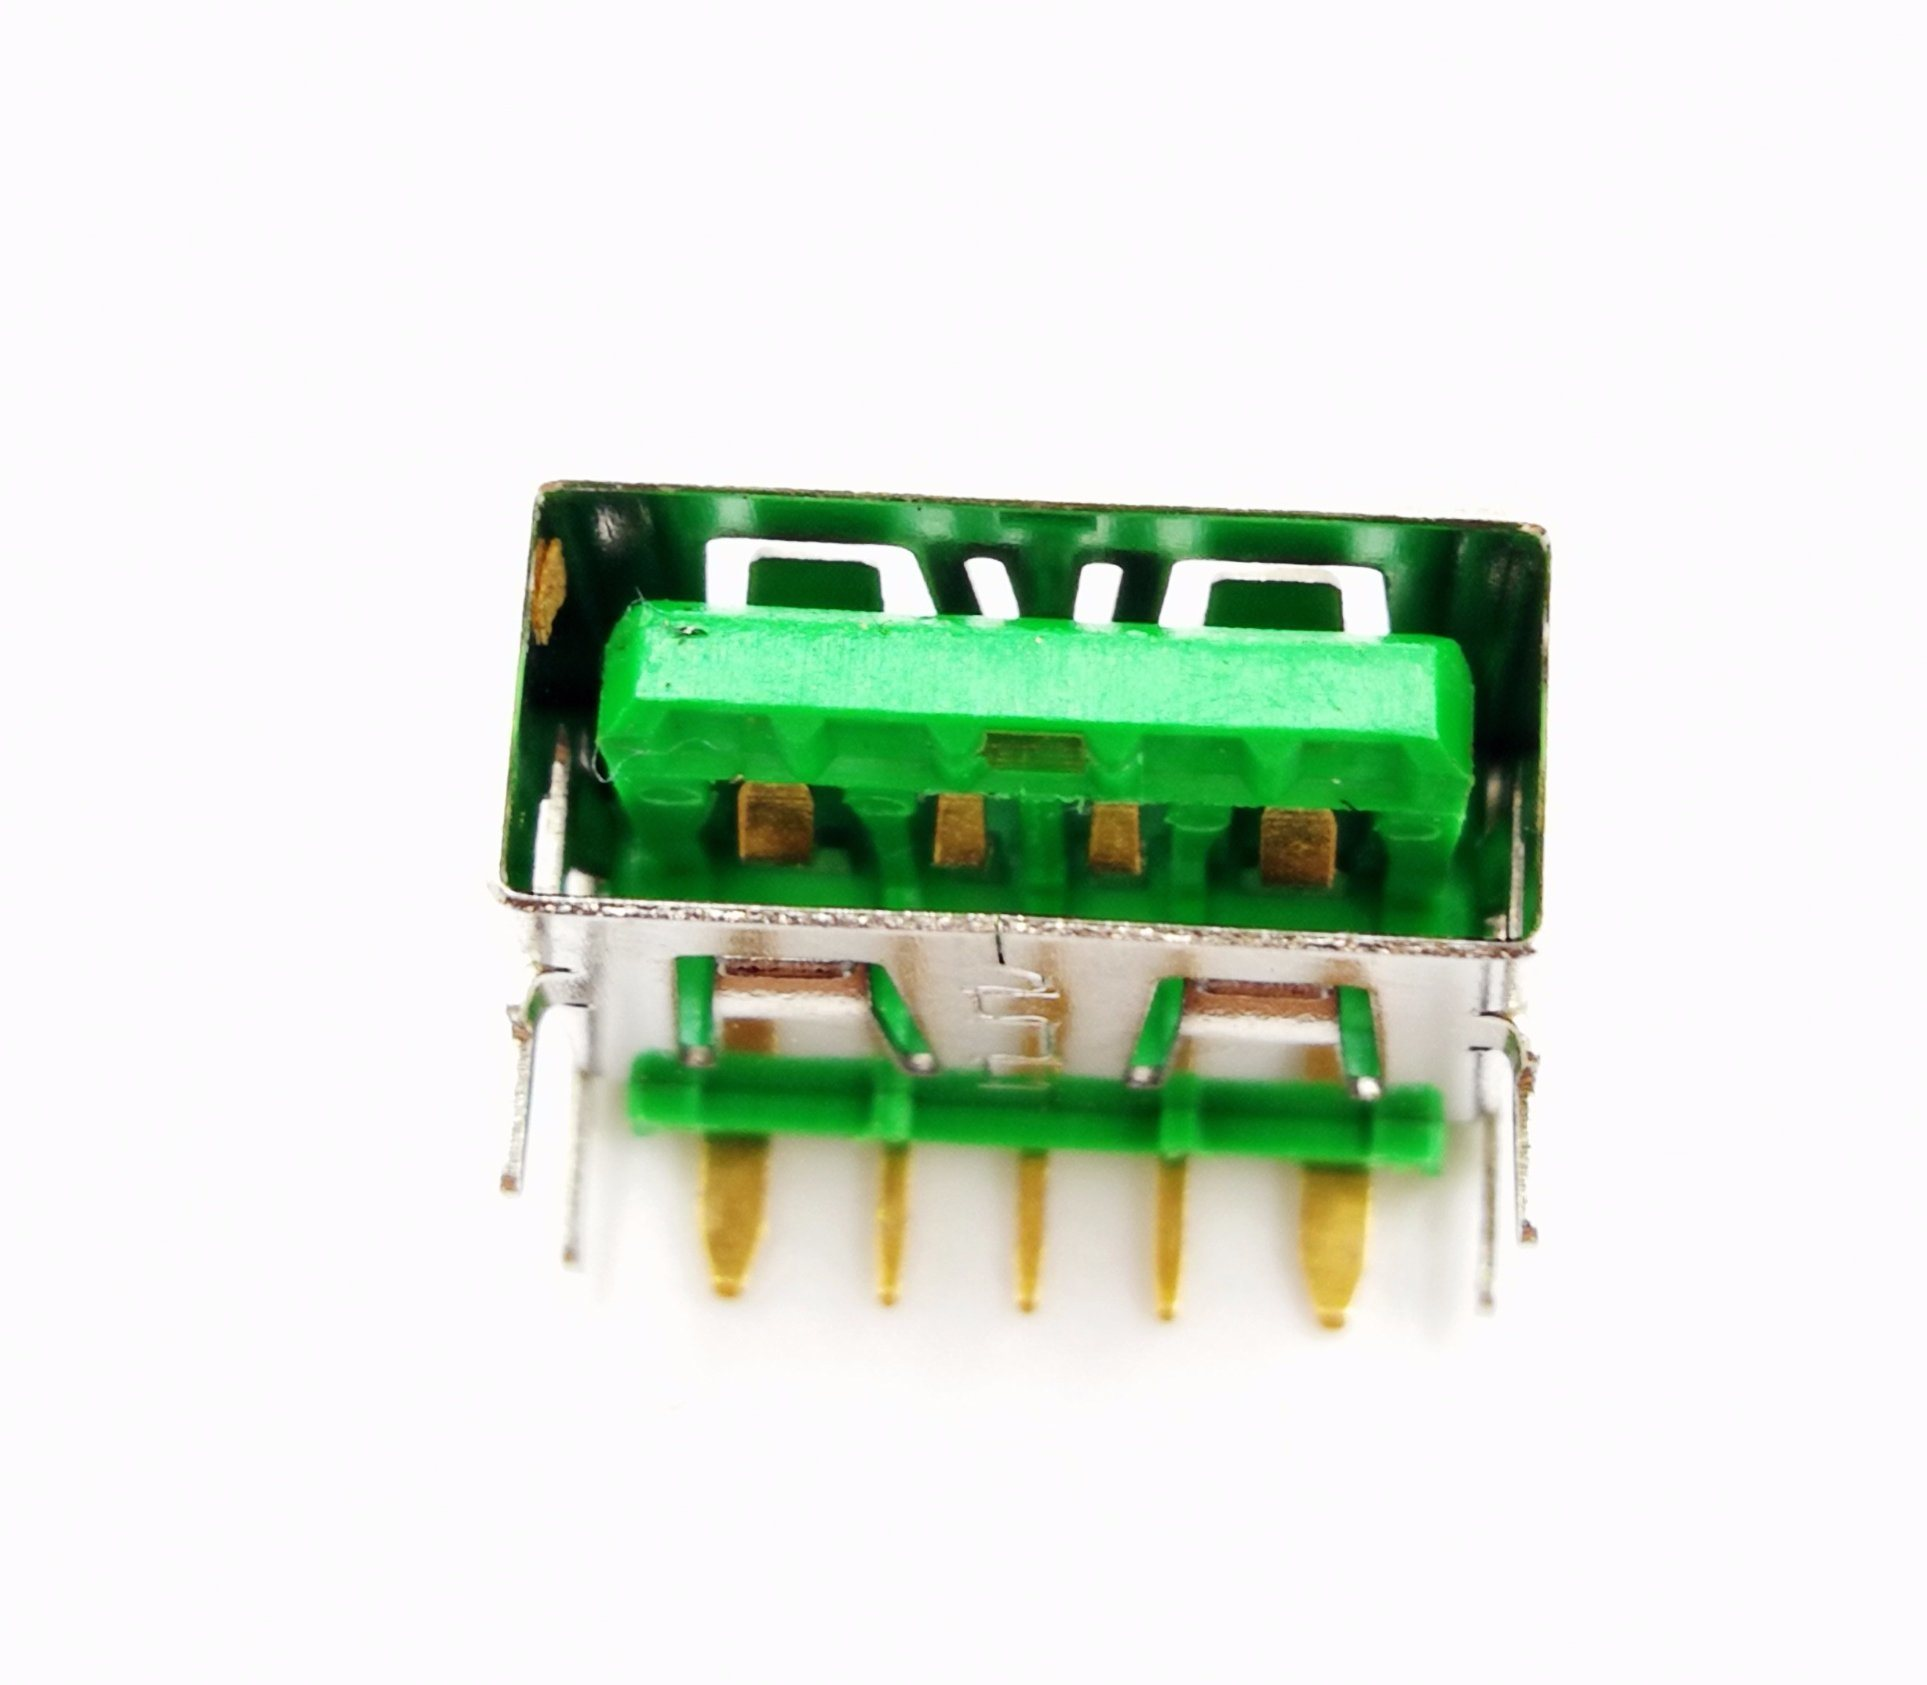 5 Pin Female Connector for Oppo Power Adapter, Power Bank. Support Quick Charge, Rated Current: 8A